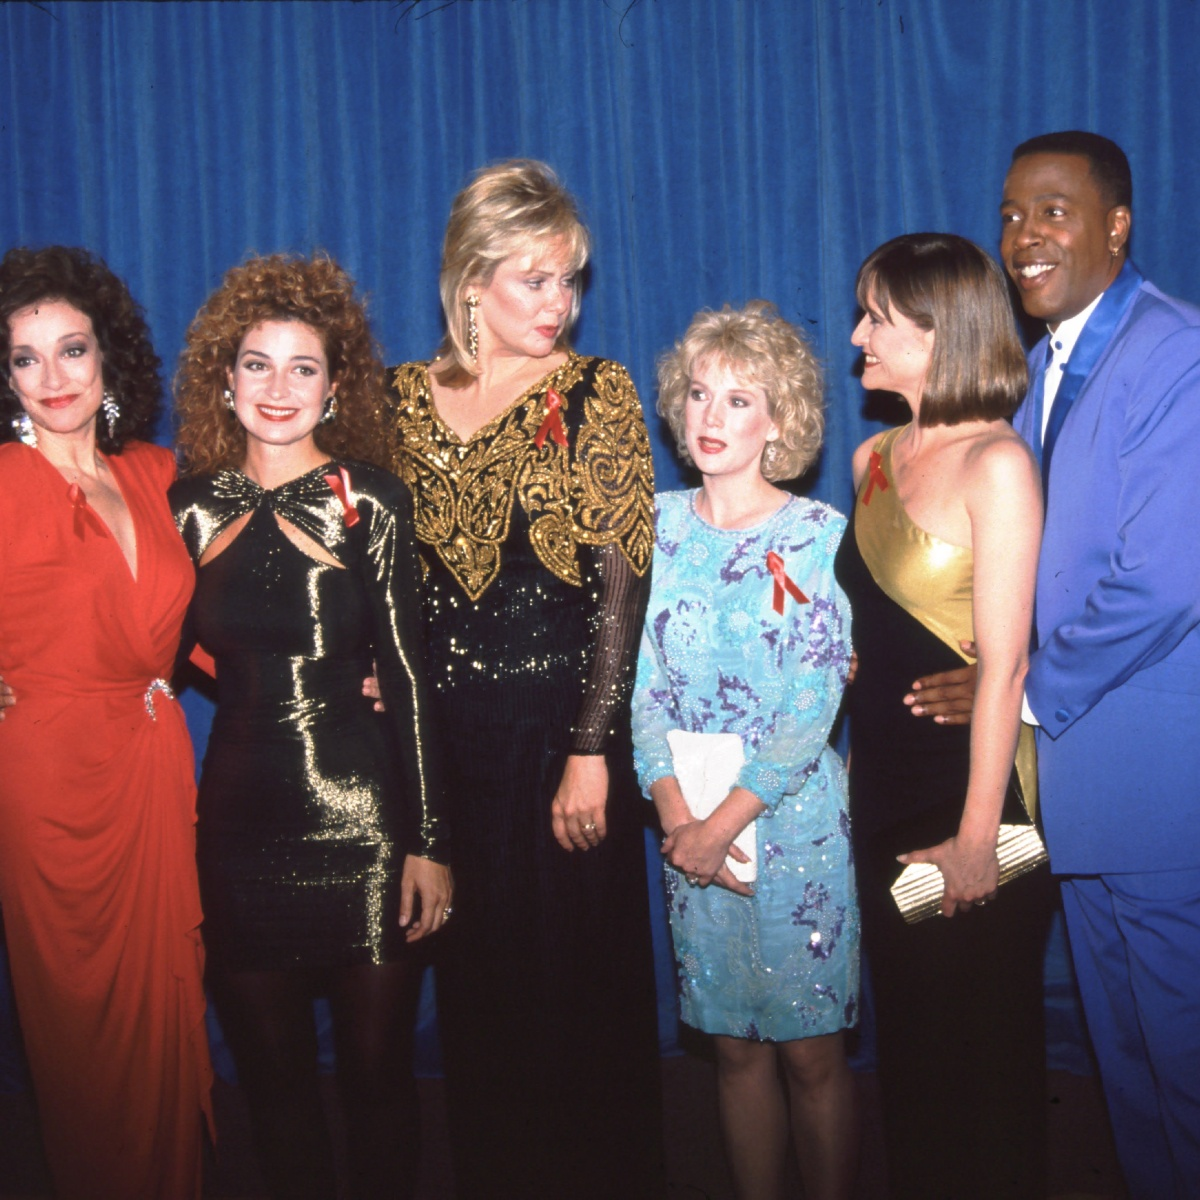 Here S What Happened To The Cast Of Designing Women Discover new books on goodreads. https www closerweekly com posts heres what happened to the cast of designing women